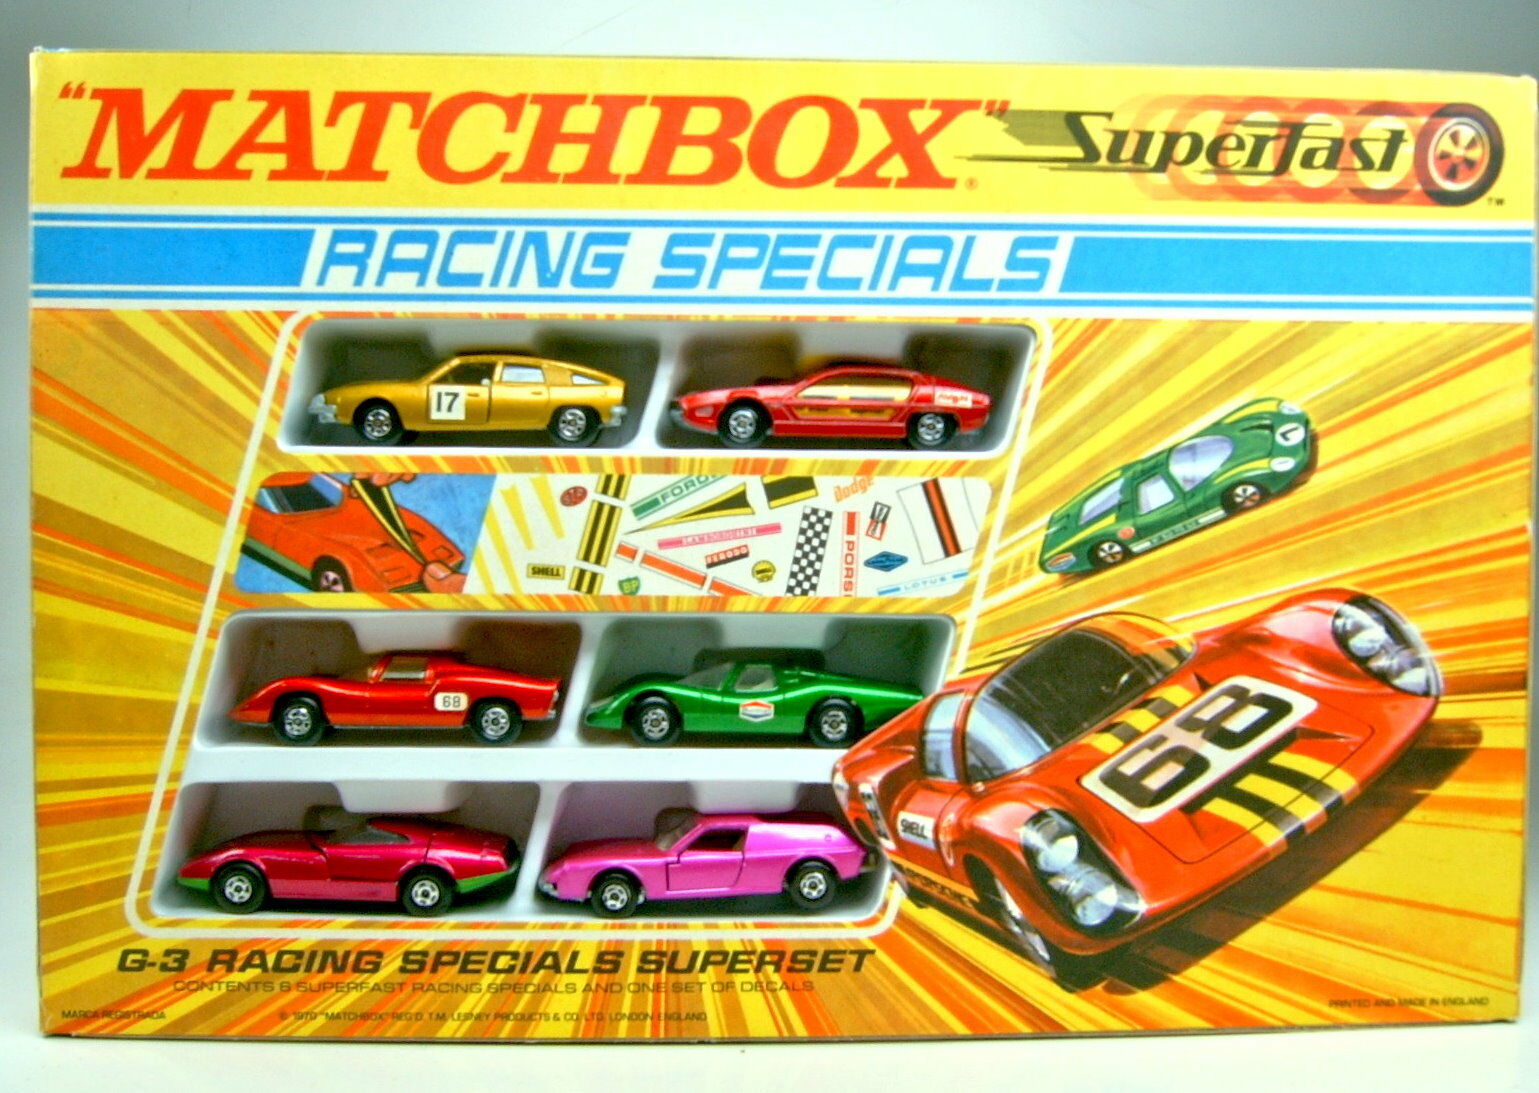 Matchbox Giftset g-3 Racing Specials Superset 1970 Complete